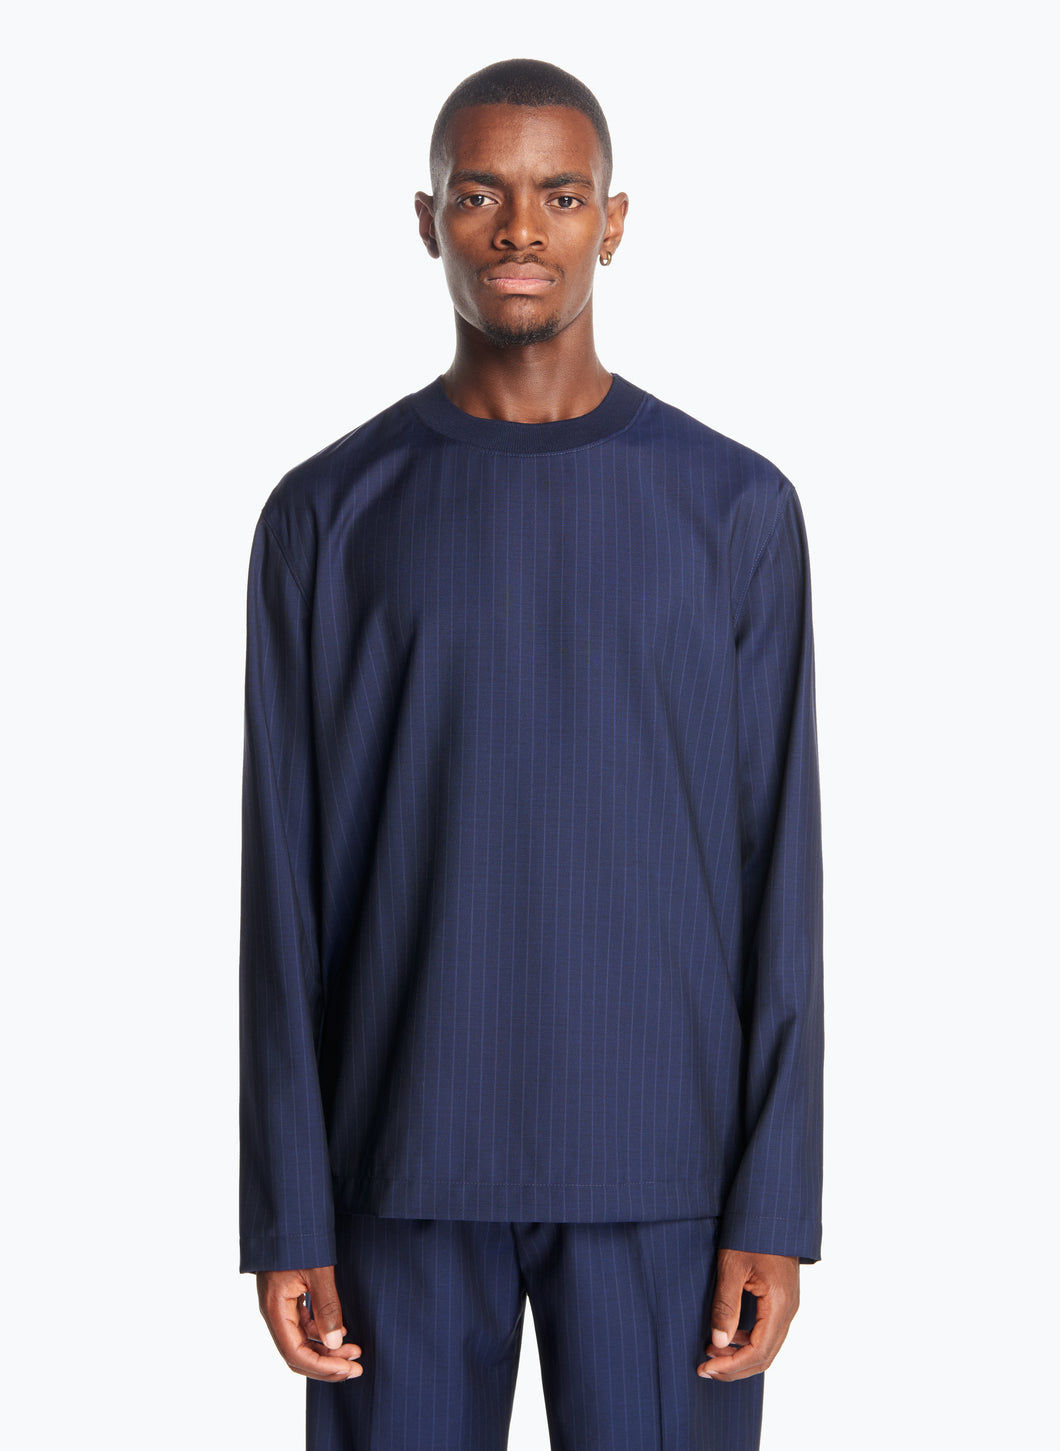 Long Sleeve T-Shirt with Edge-Ribbed Collar in Navy Blue Striped Cool Wool